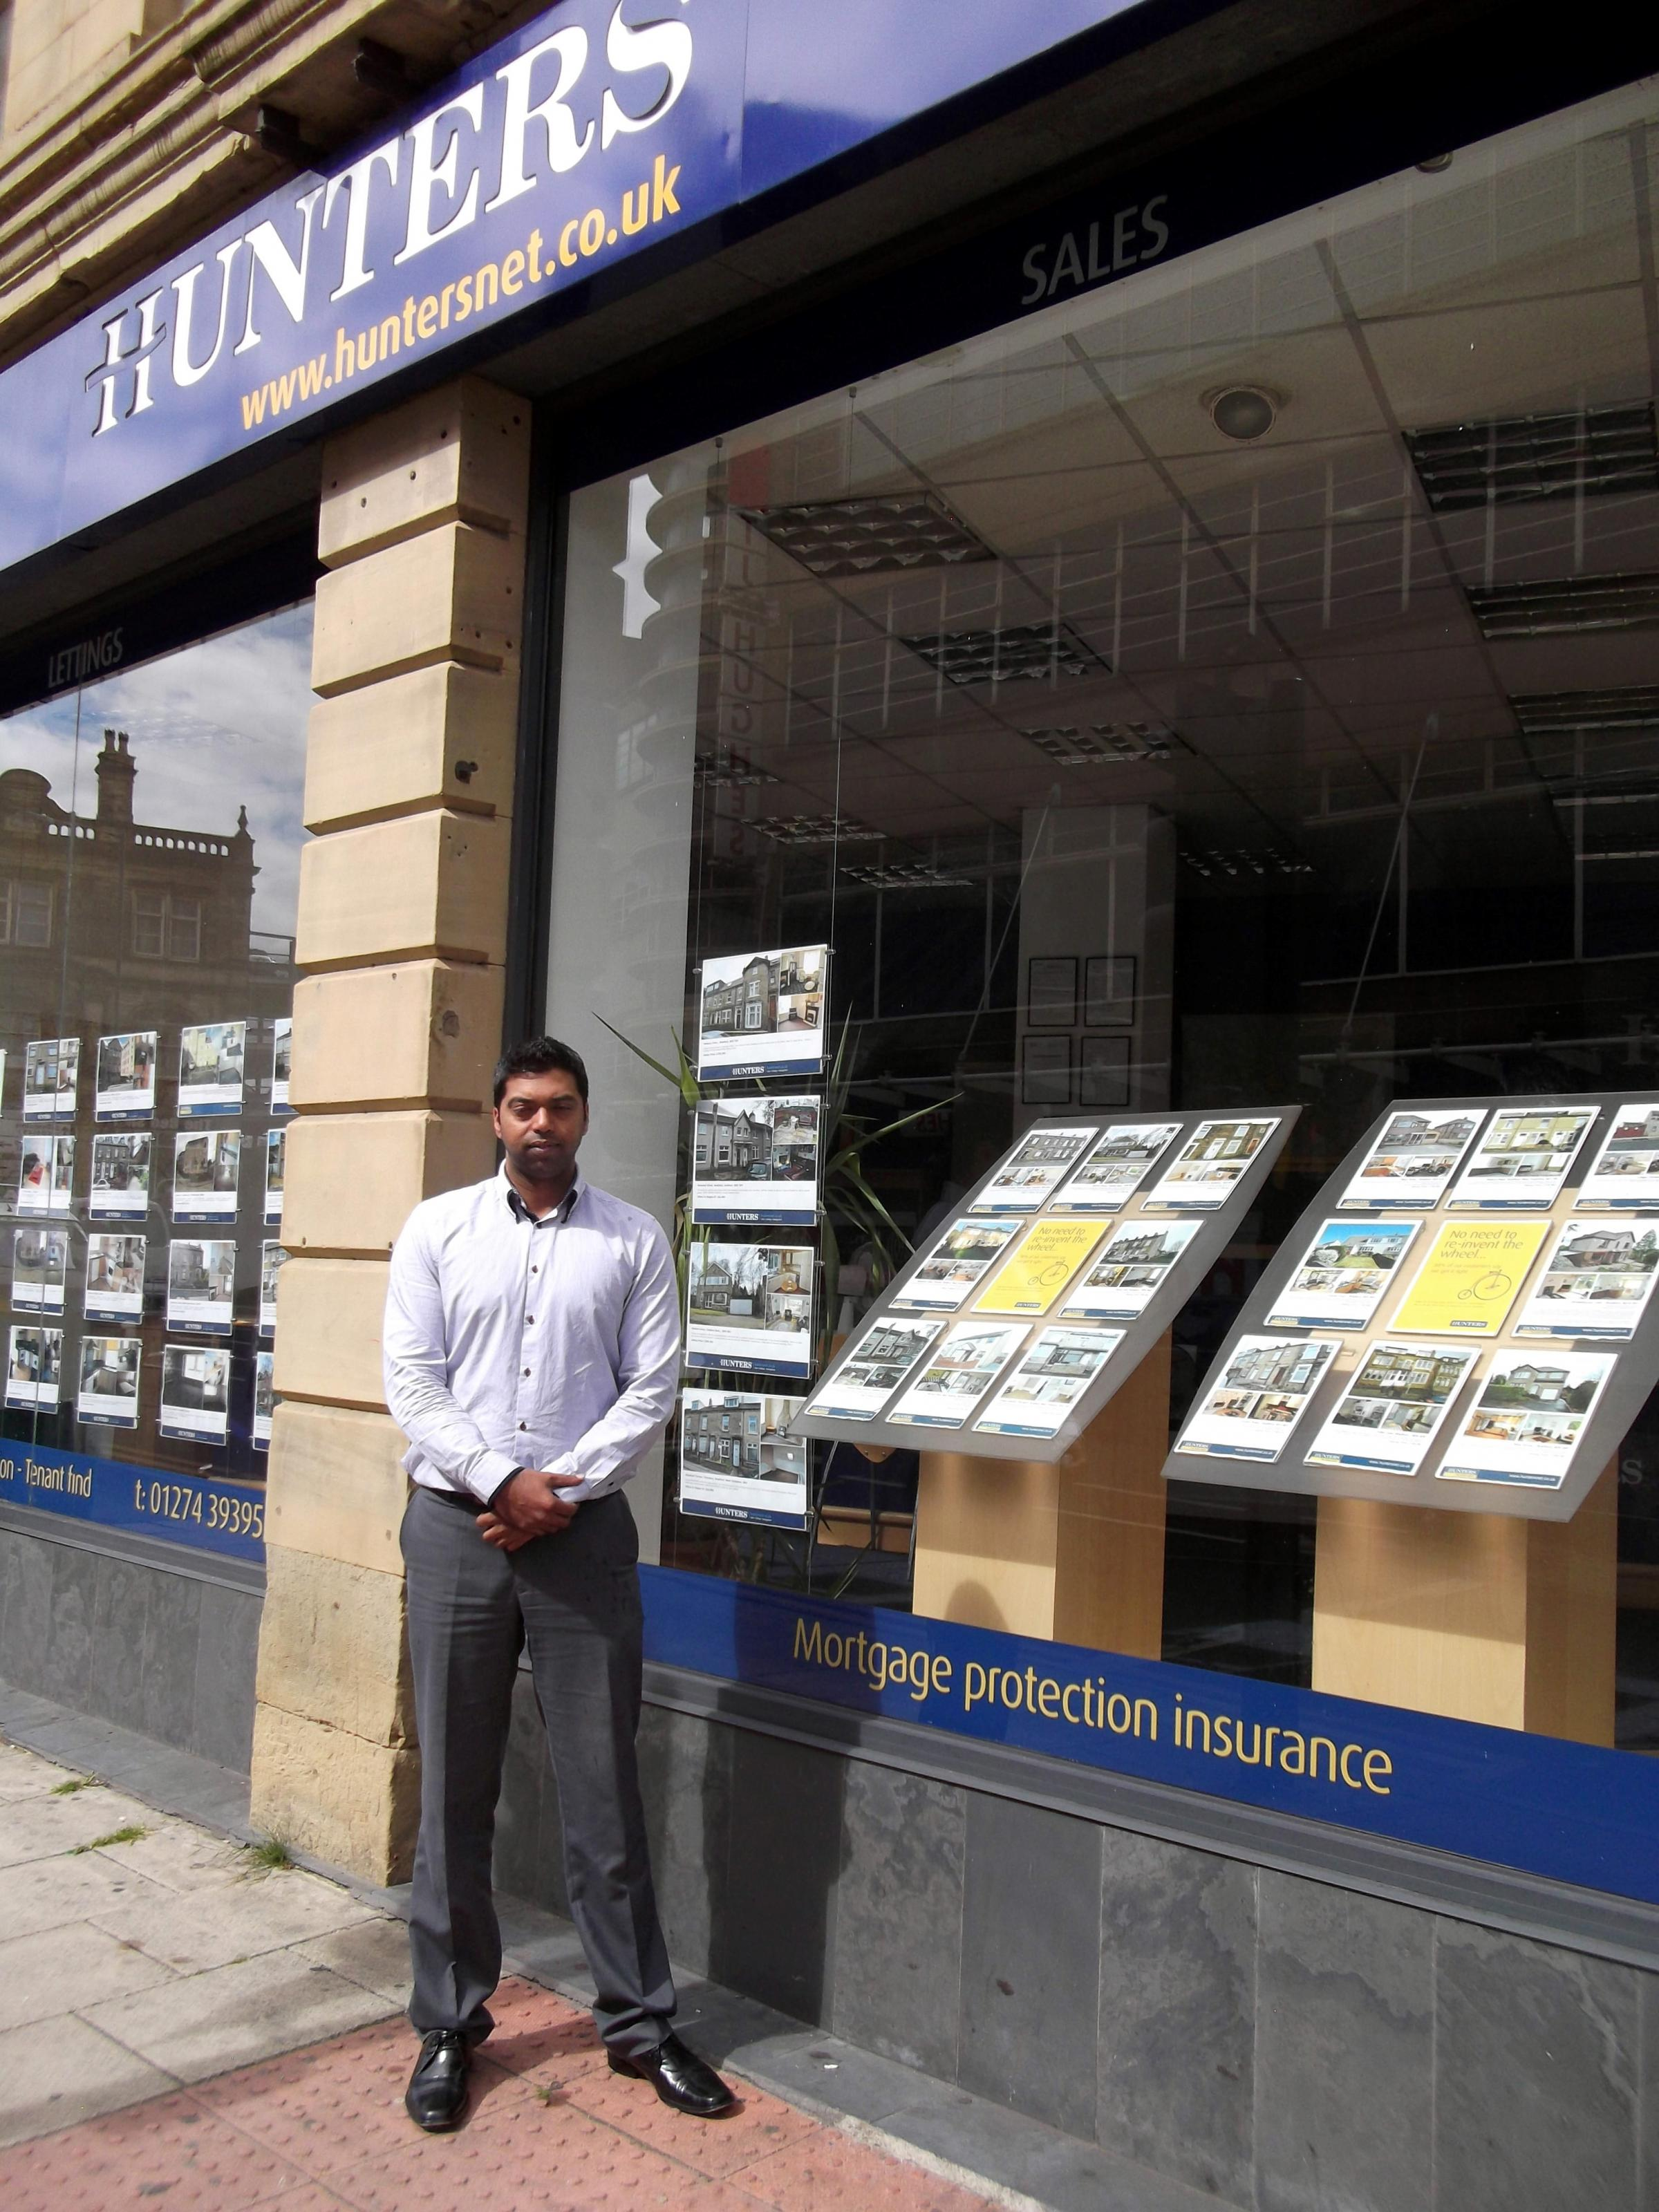 RISING PRICES: Ibrar Hussain, director at Hunters estate agents, who said affordability is declining as prices rise